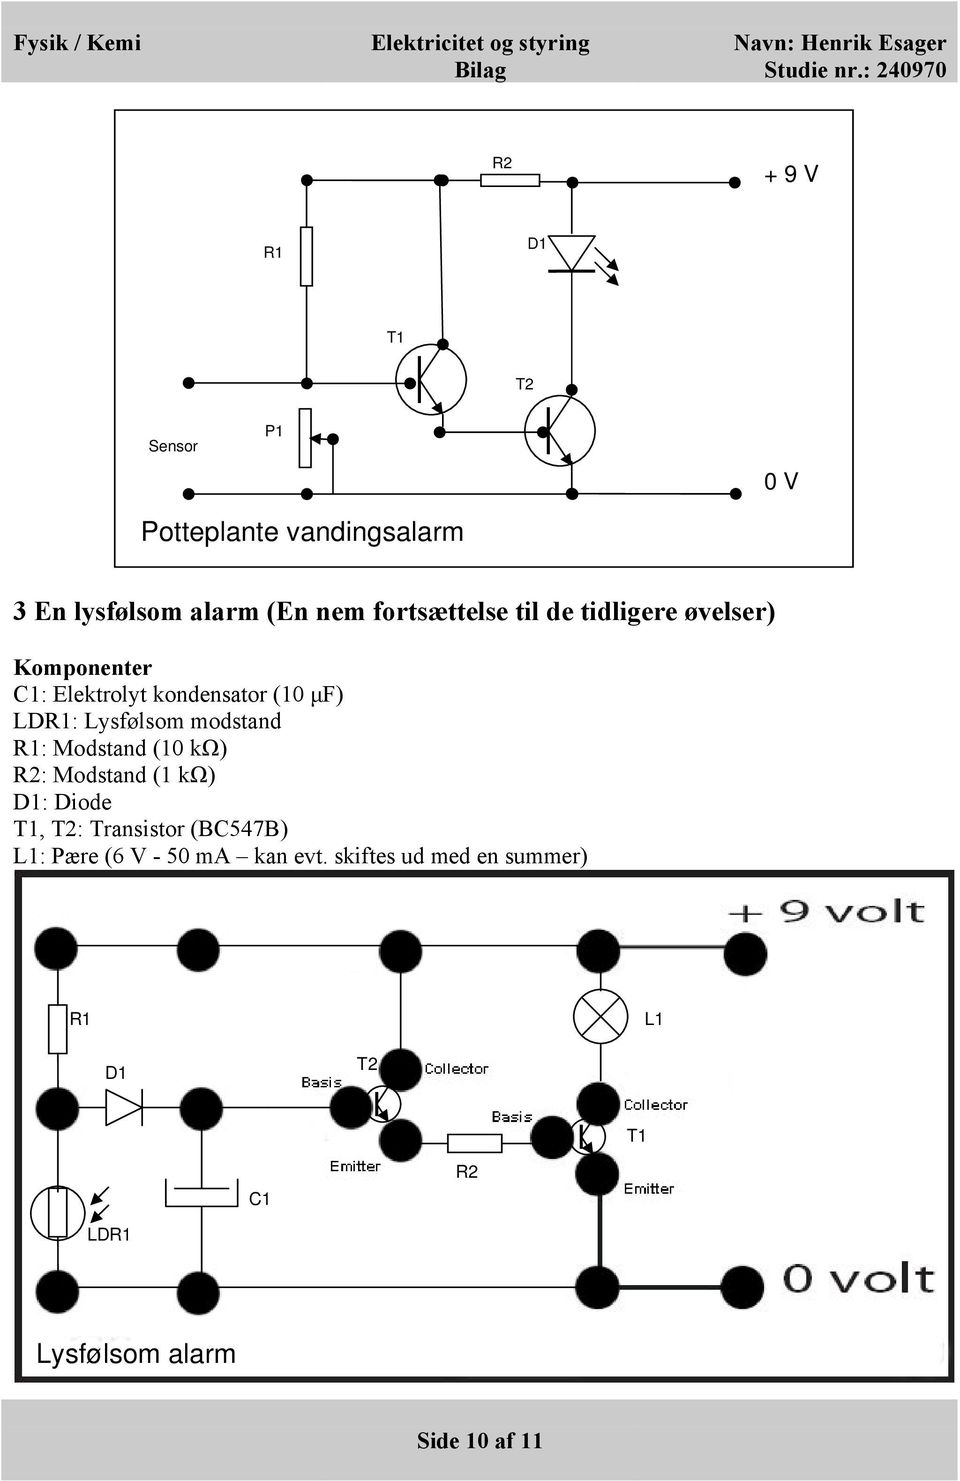 Lysfølsom modstand R1: Modstand (10 kω) R2: Modstand (1 kω) D1: Diode T1, T2: Transistor (BC547B)